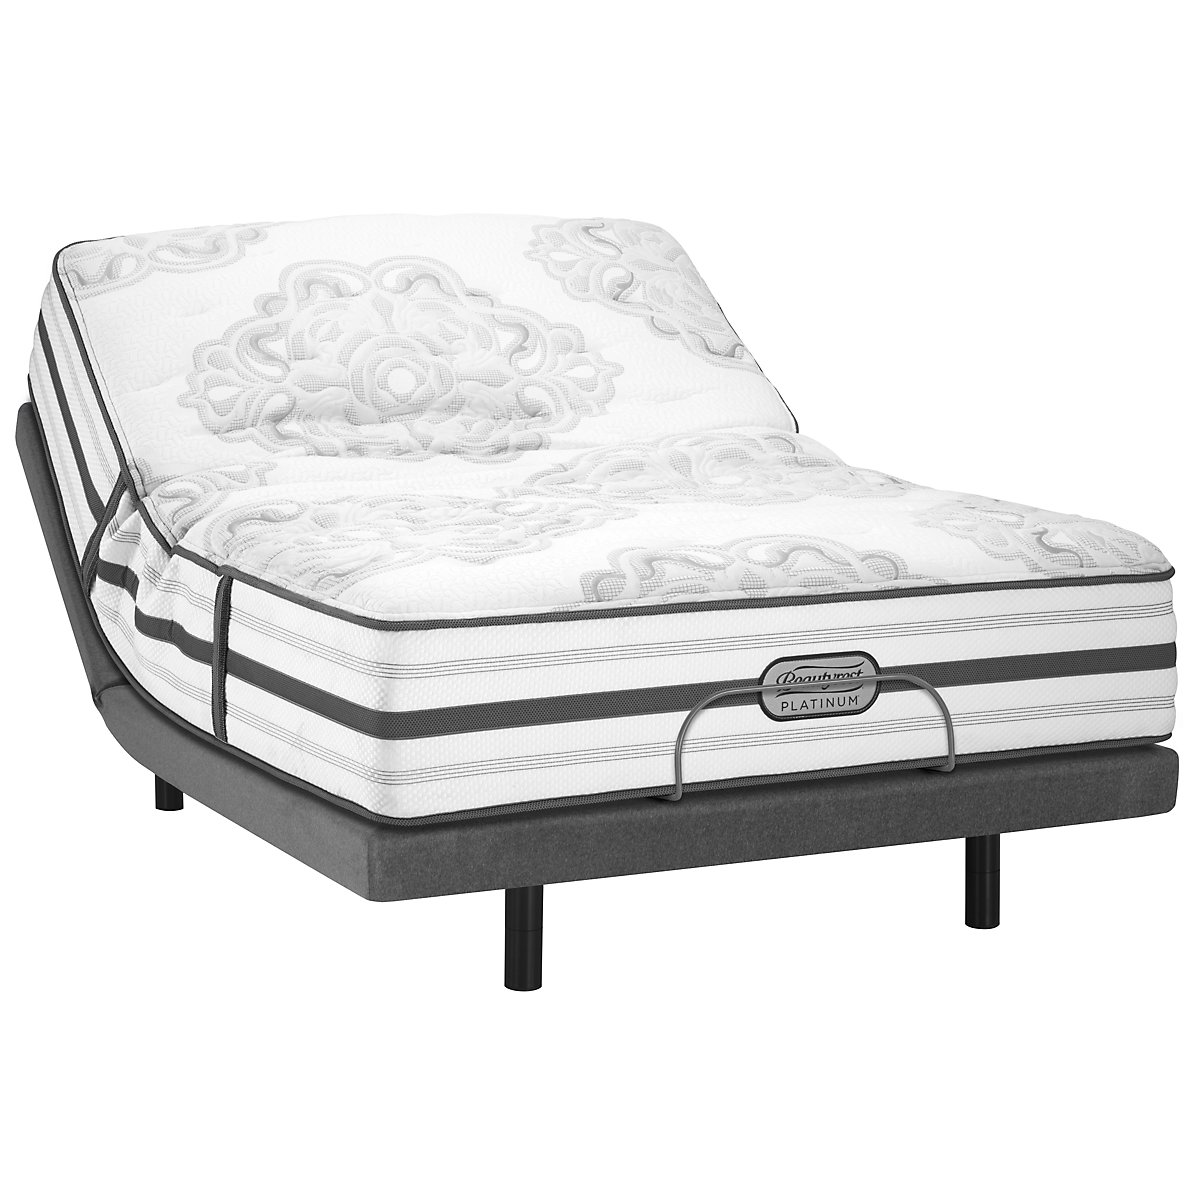 Beautyrest Platinum Brittany Plush Innerspring Elite Adjustable Mattress Set